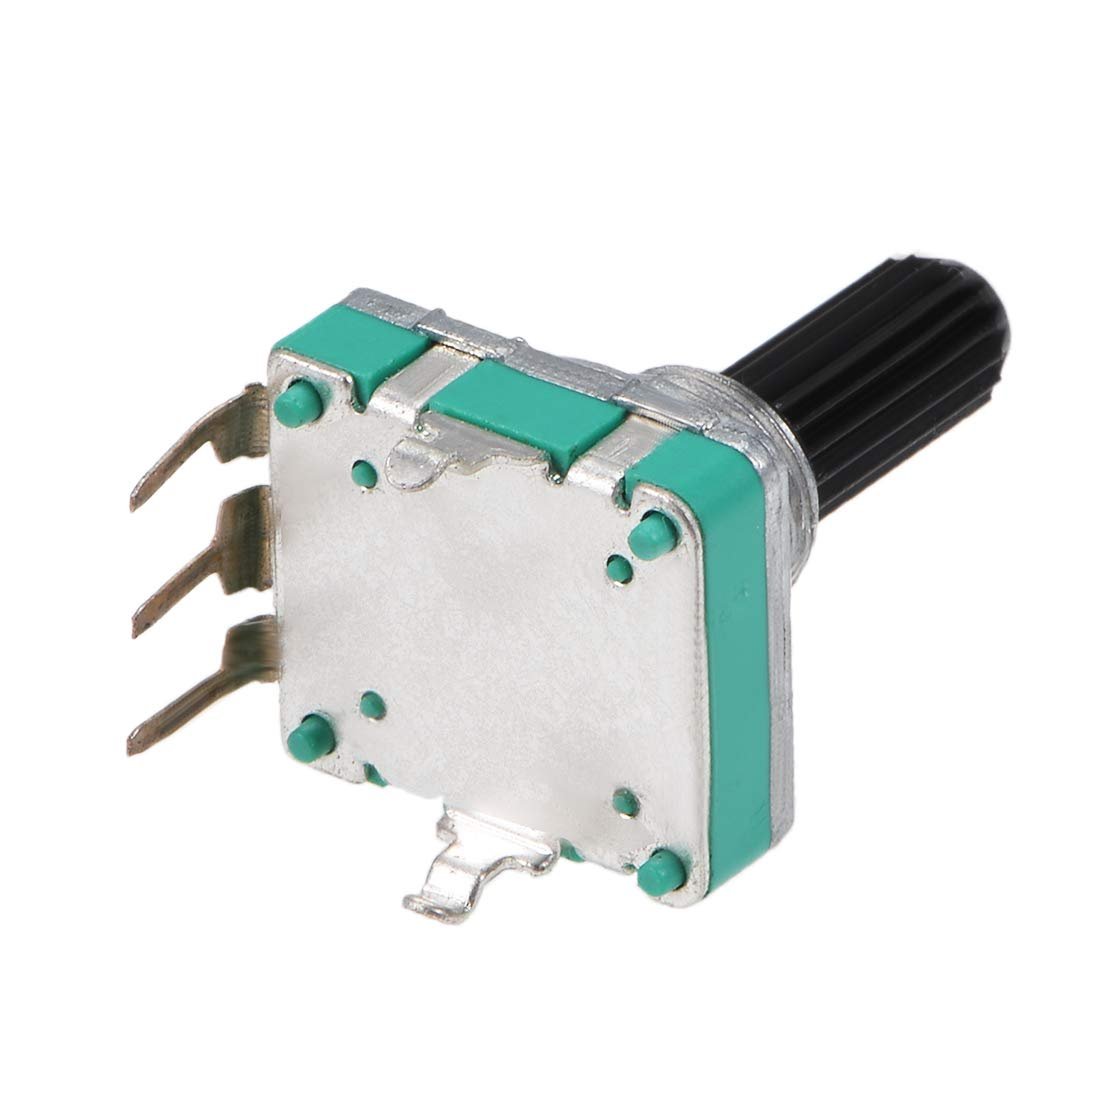 uxcell 360 Degree Rotary Encoder Code Switch Digital Potentiometers EC16 5 Pins 20 Digits 10Pcs